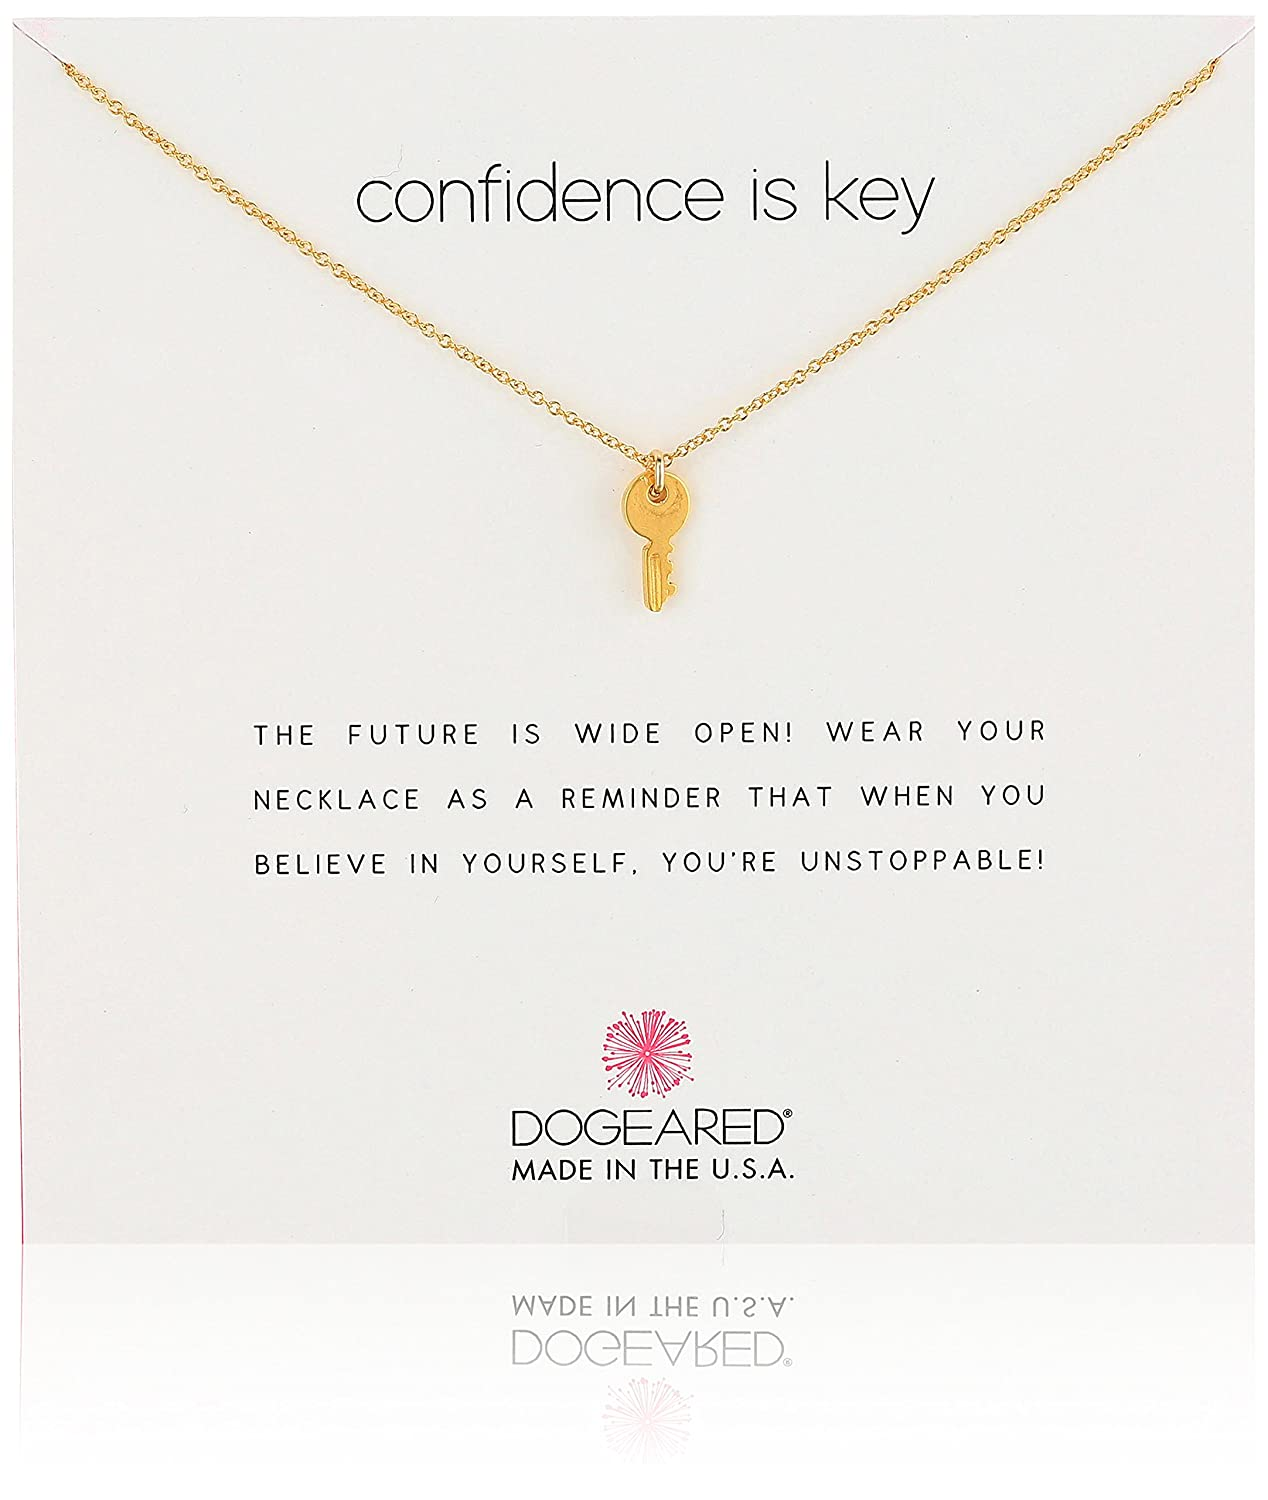 Dogeared Reminders Confidence Is Key Cute Pendant Necklace, 18 16+2 Extender MG1119